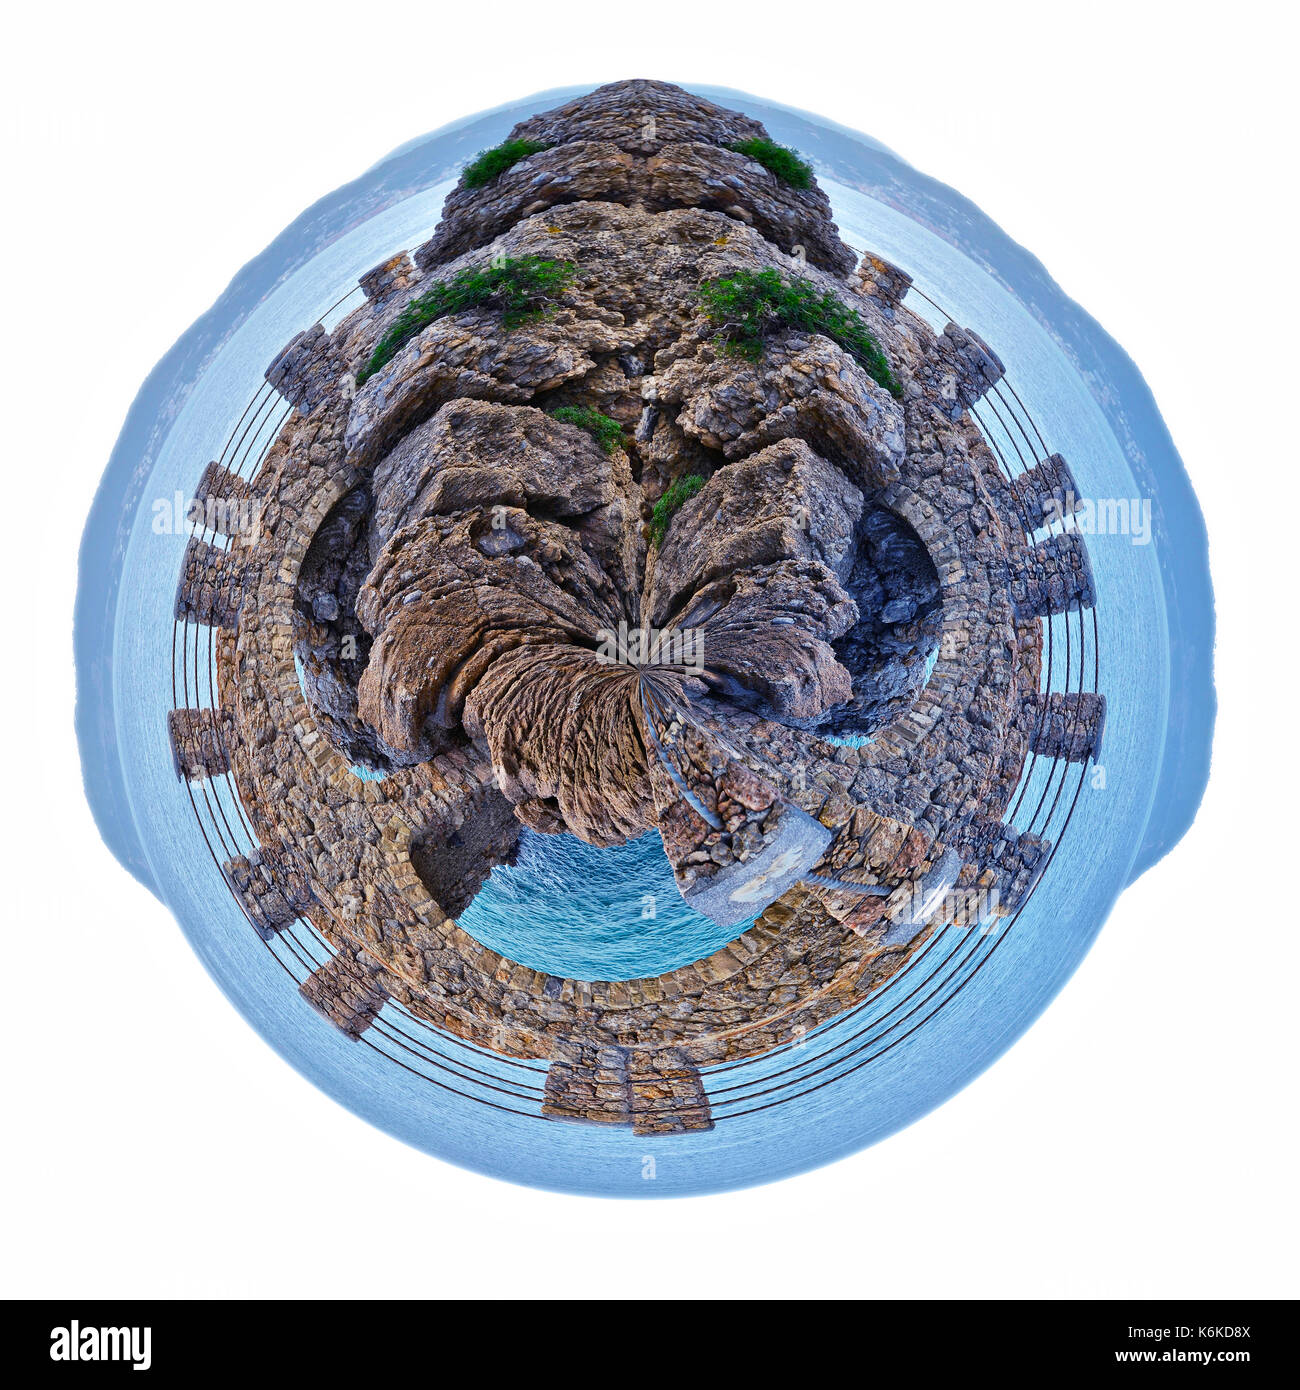 small planet of Alassio with a bridge along the coast overlooking the Mediterranean Sea, in Italy - Stock Image